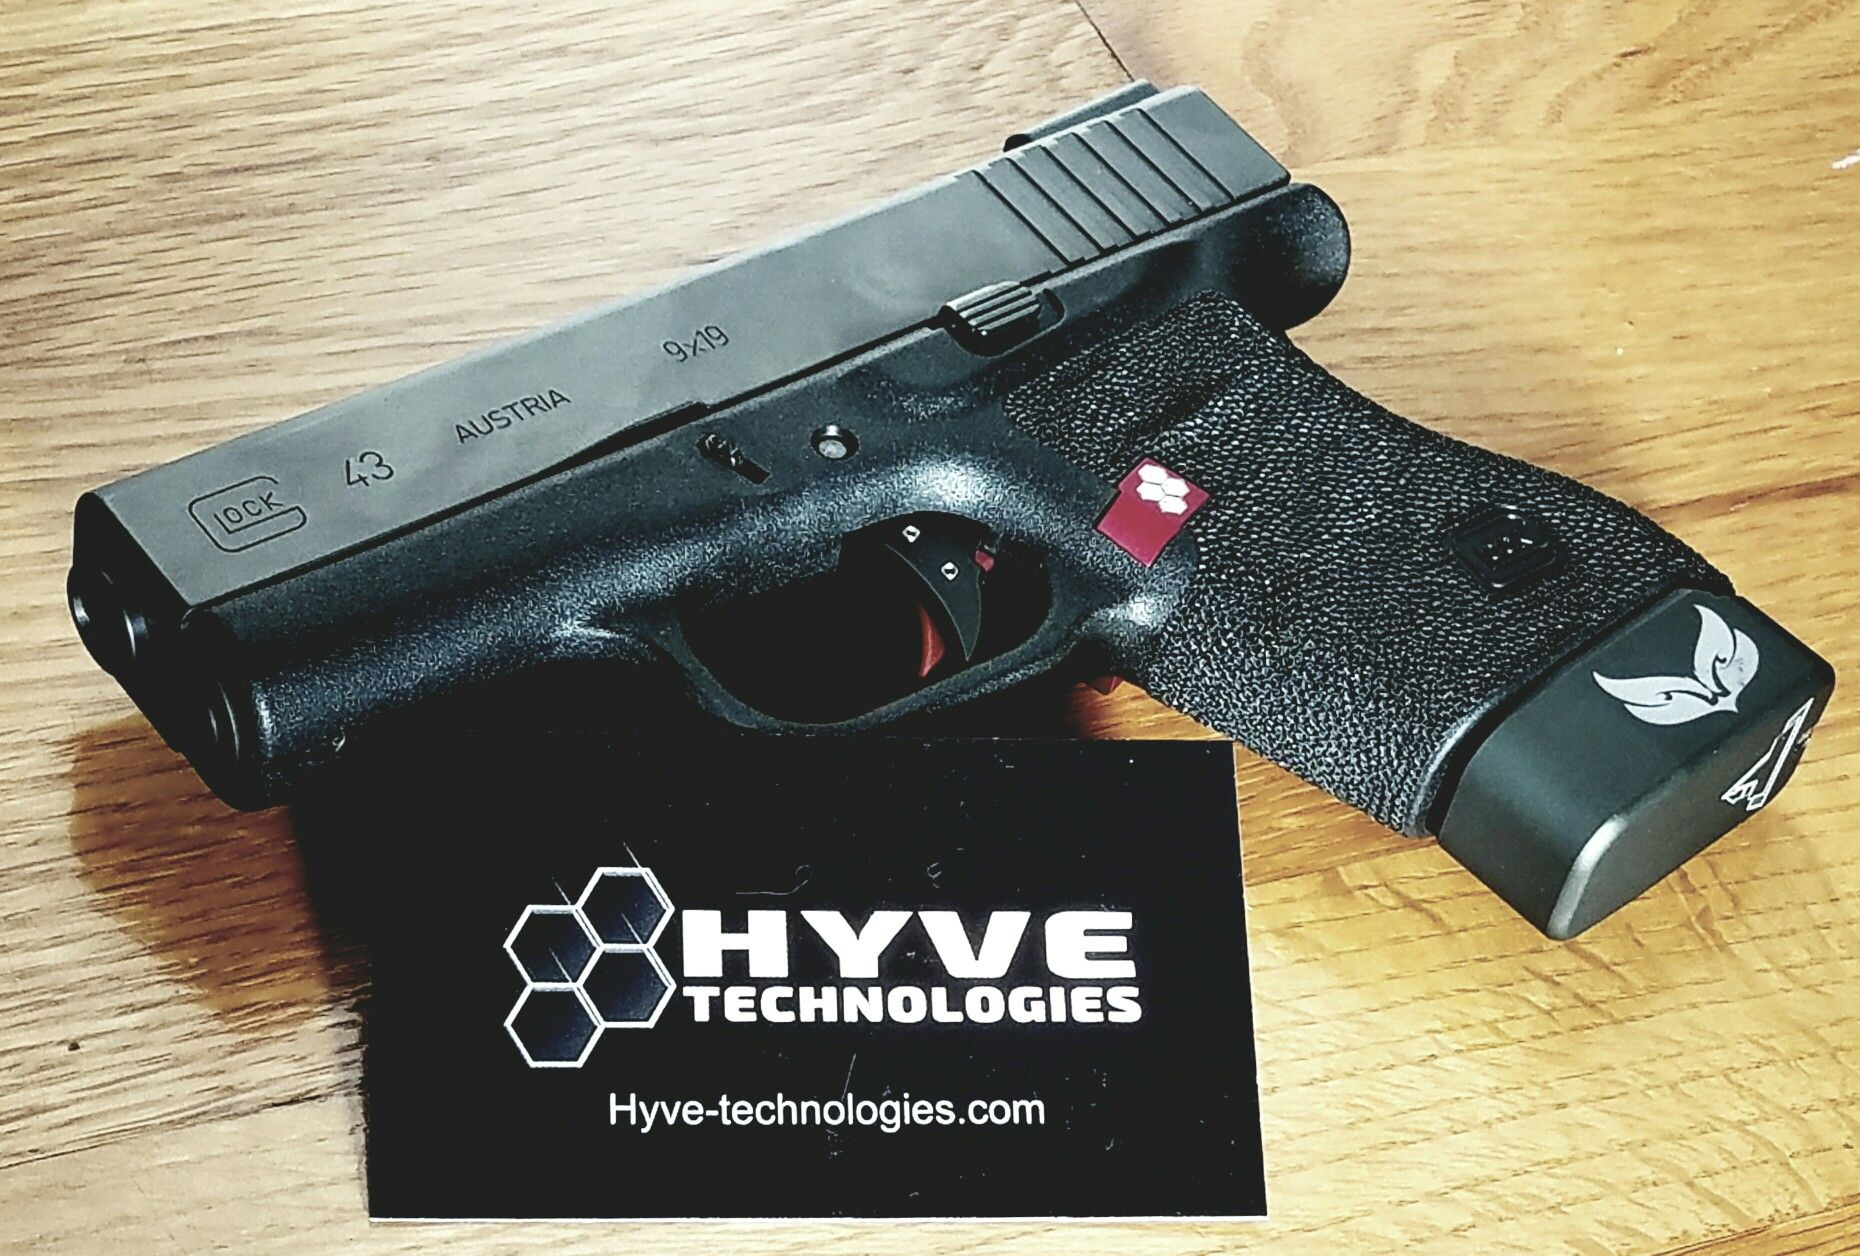 Pin on Glock 43 Holsters and Gear